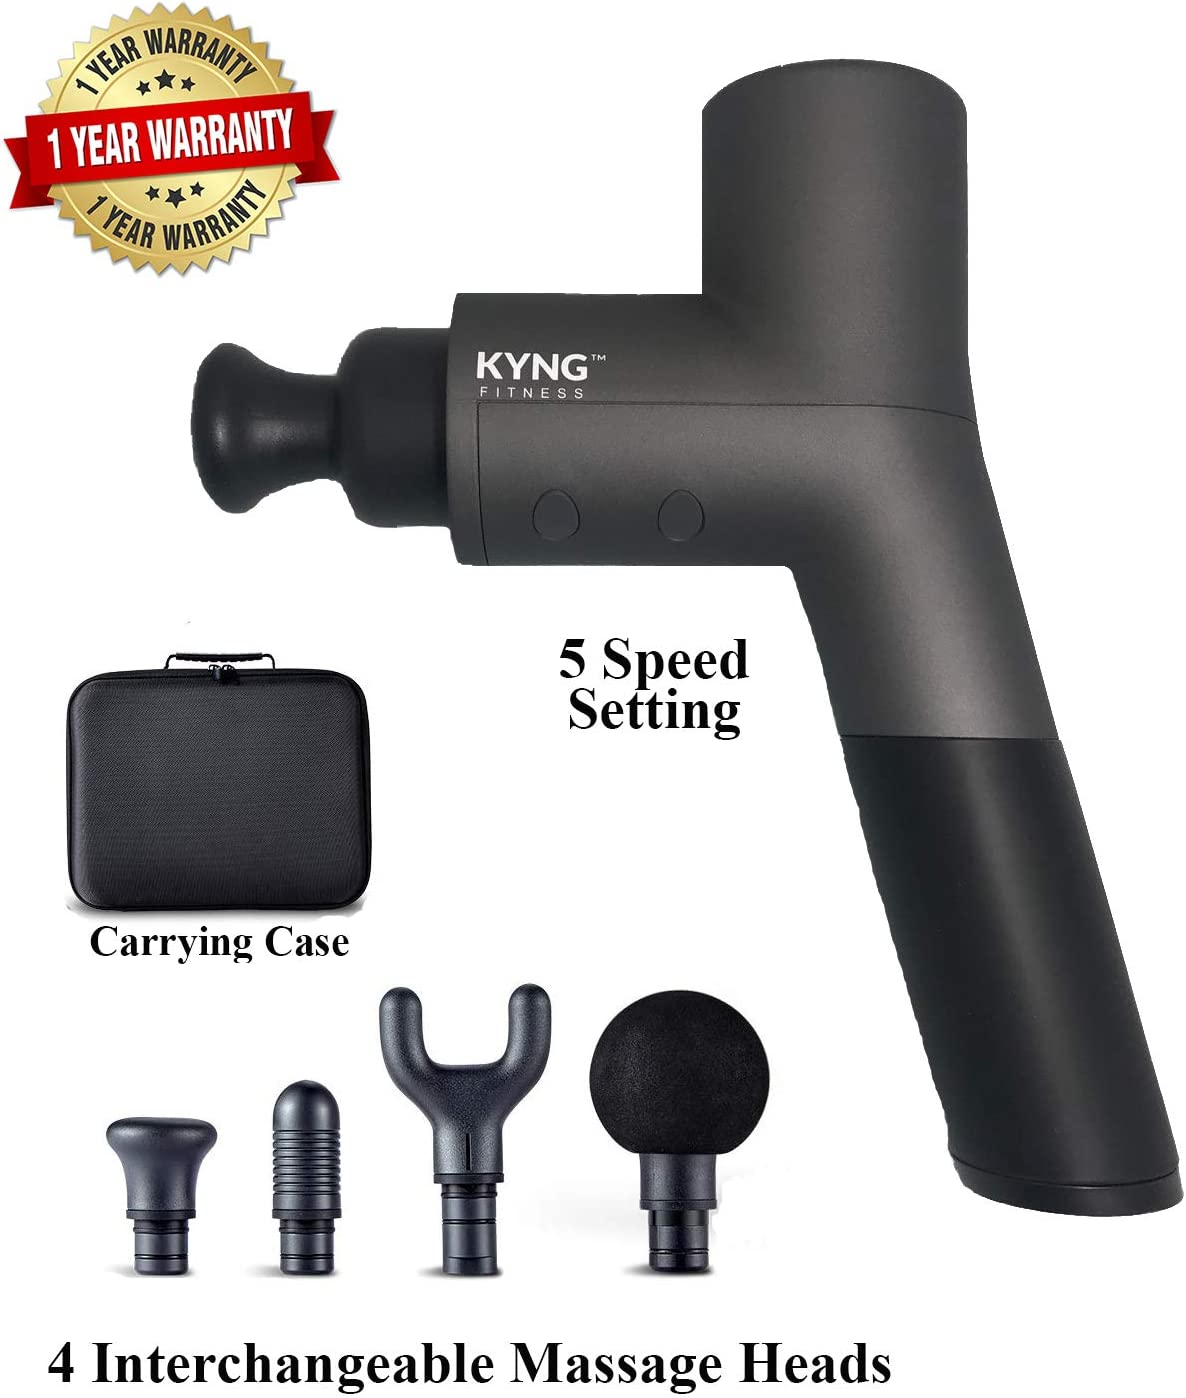 Kyng Fitness Massage Gun PRO PT 26V Quiet Handheld Deep Tissue Massager Rechargeable Handheld Massage Gun Percussive Vibration Therapy Massager Rechargeable Battery, Pain Relief, Recovery, Body Relief